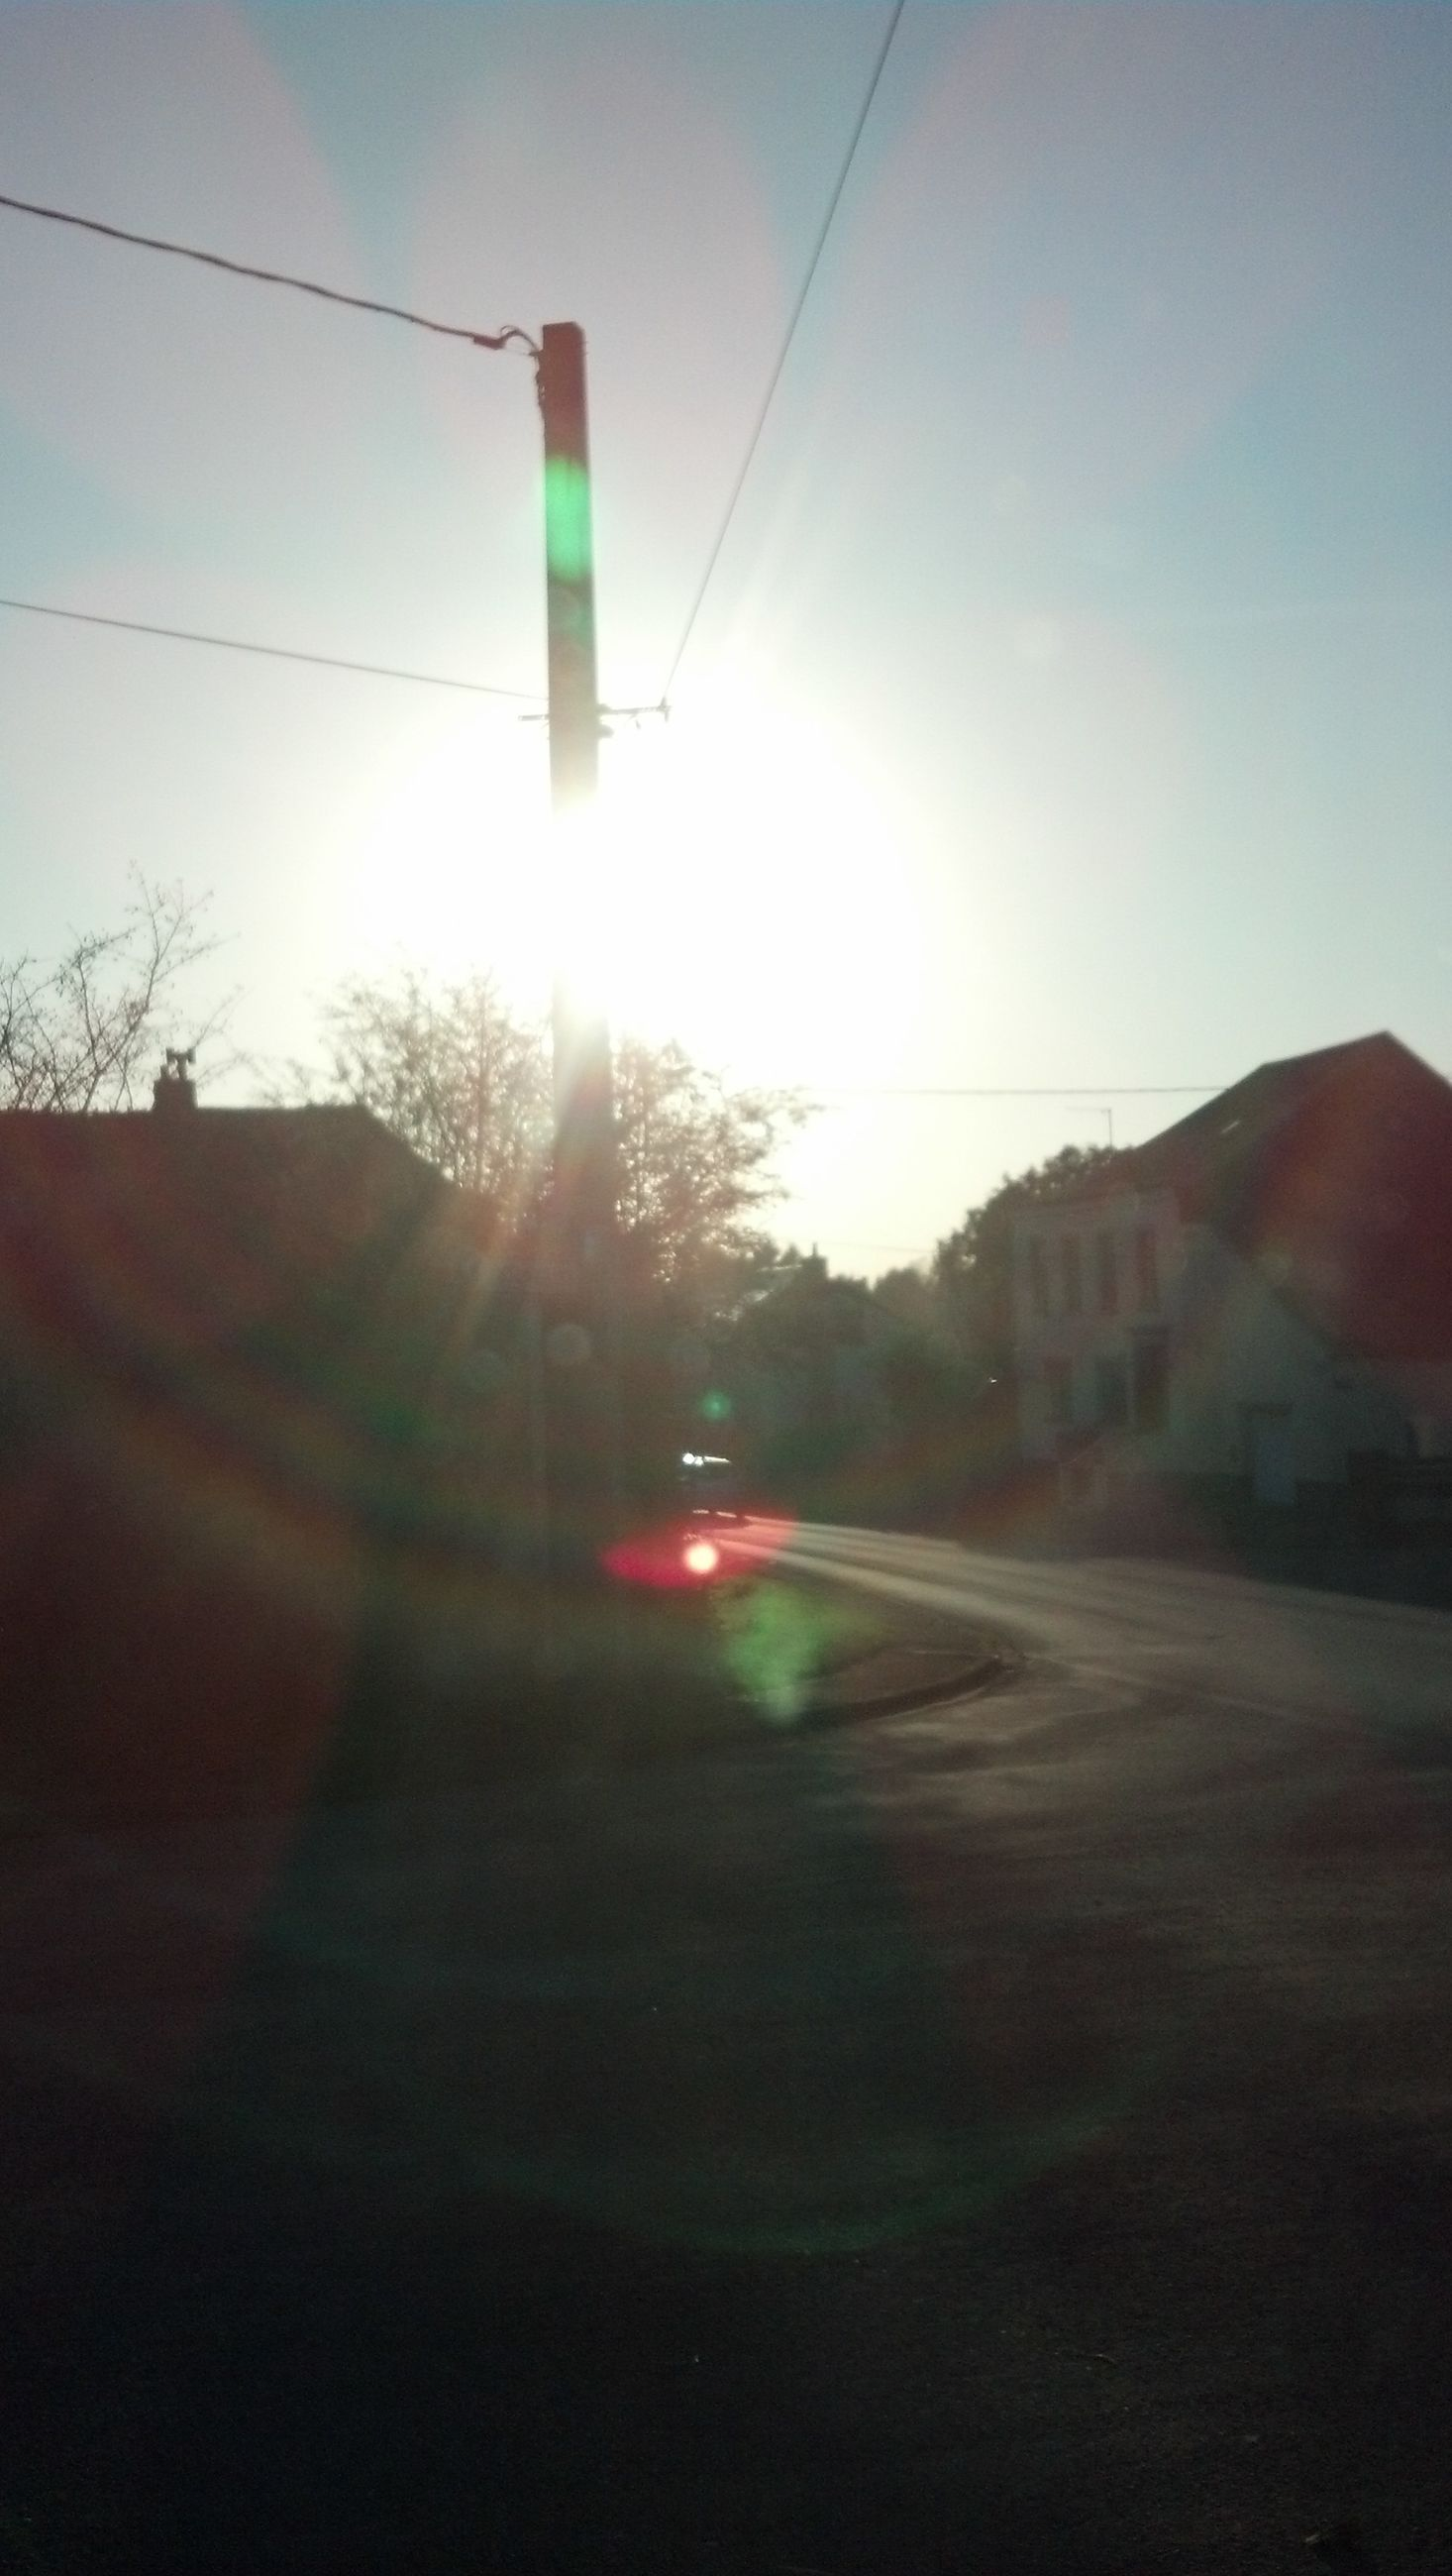 sun, lens flare, sunlight, sunbeam, clear sky, road, transportation, street, built structure, building exterior, car, sky, architecture, sunny, the way forward, sunset, street light, outdoors, bright, no people